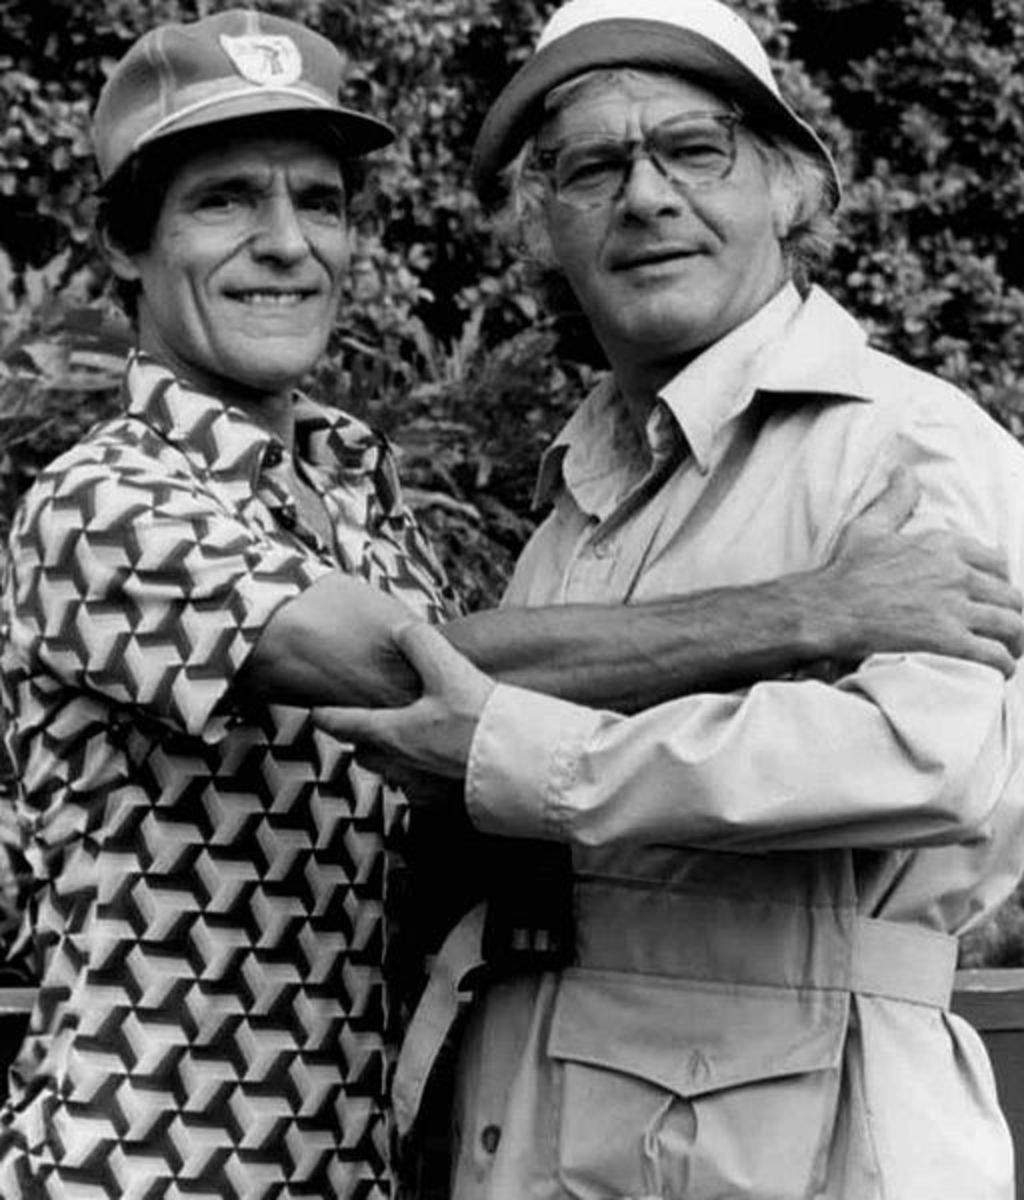 Puppeteer Cosmo Allegretti (Dancing Bear and others) and actor Dick Shawn on Captain Kangaroo in 1977. Many famous actors were guests on the shows.